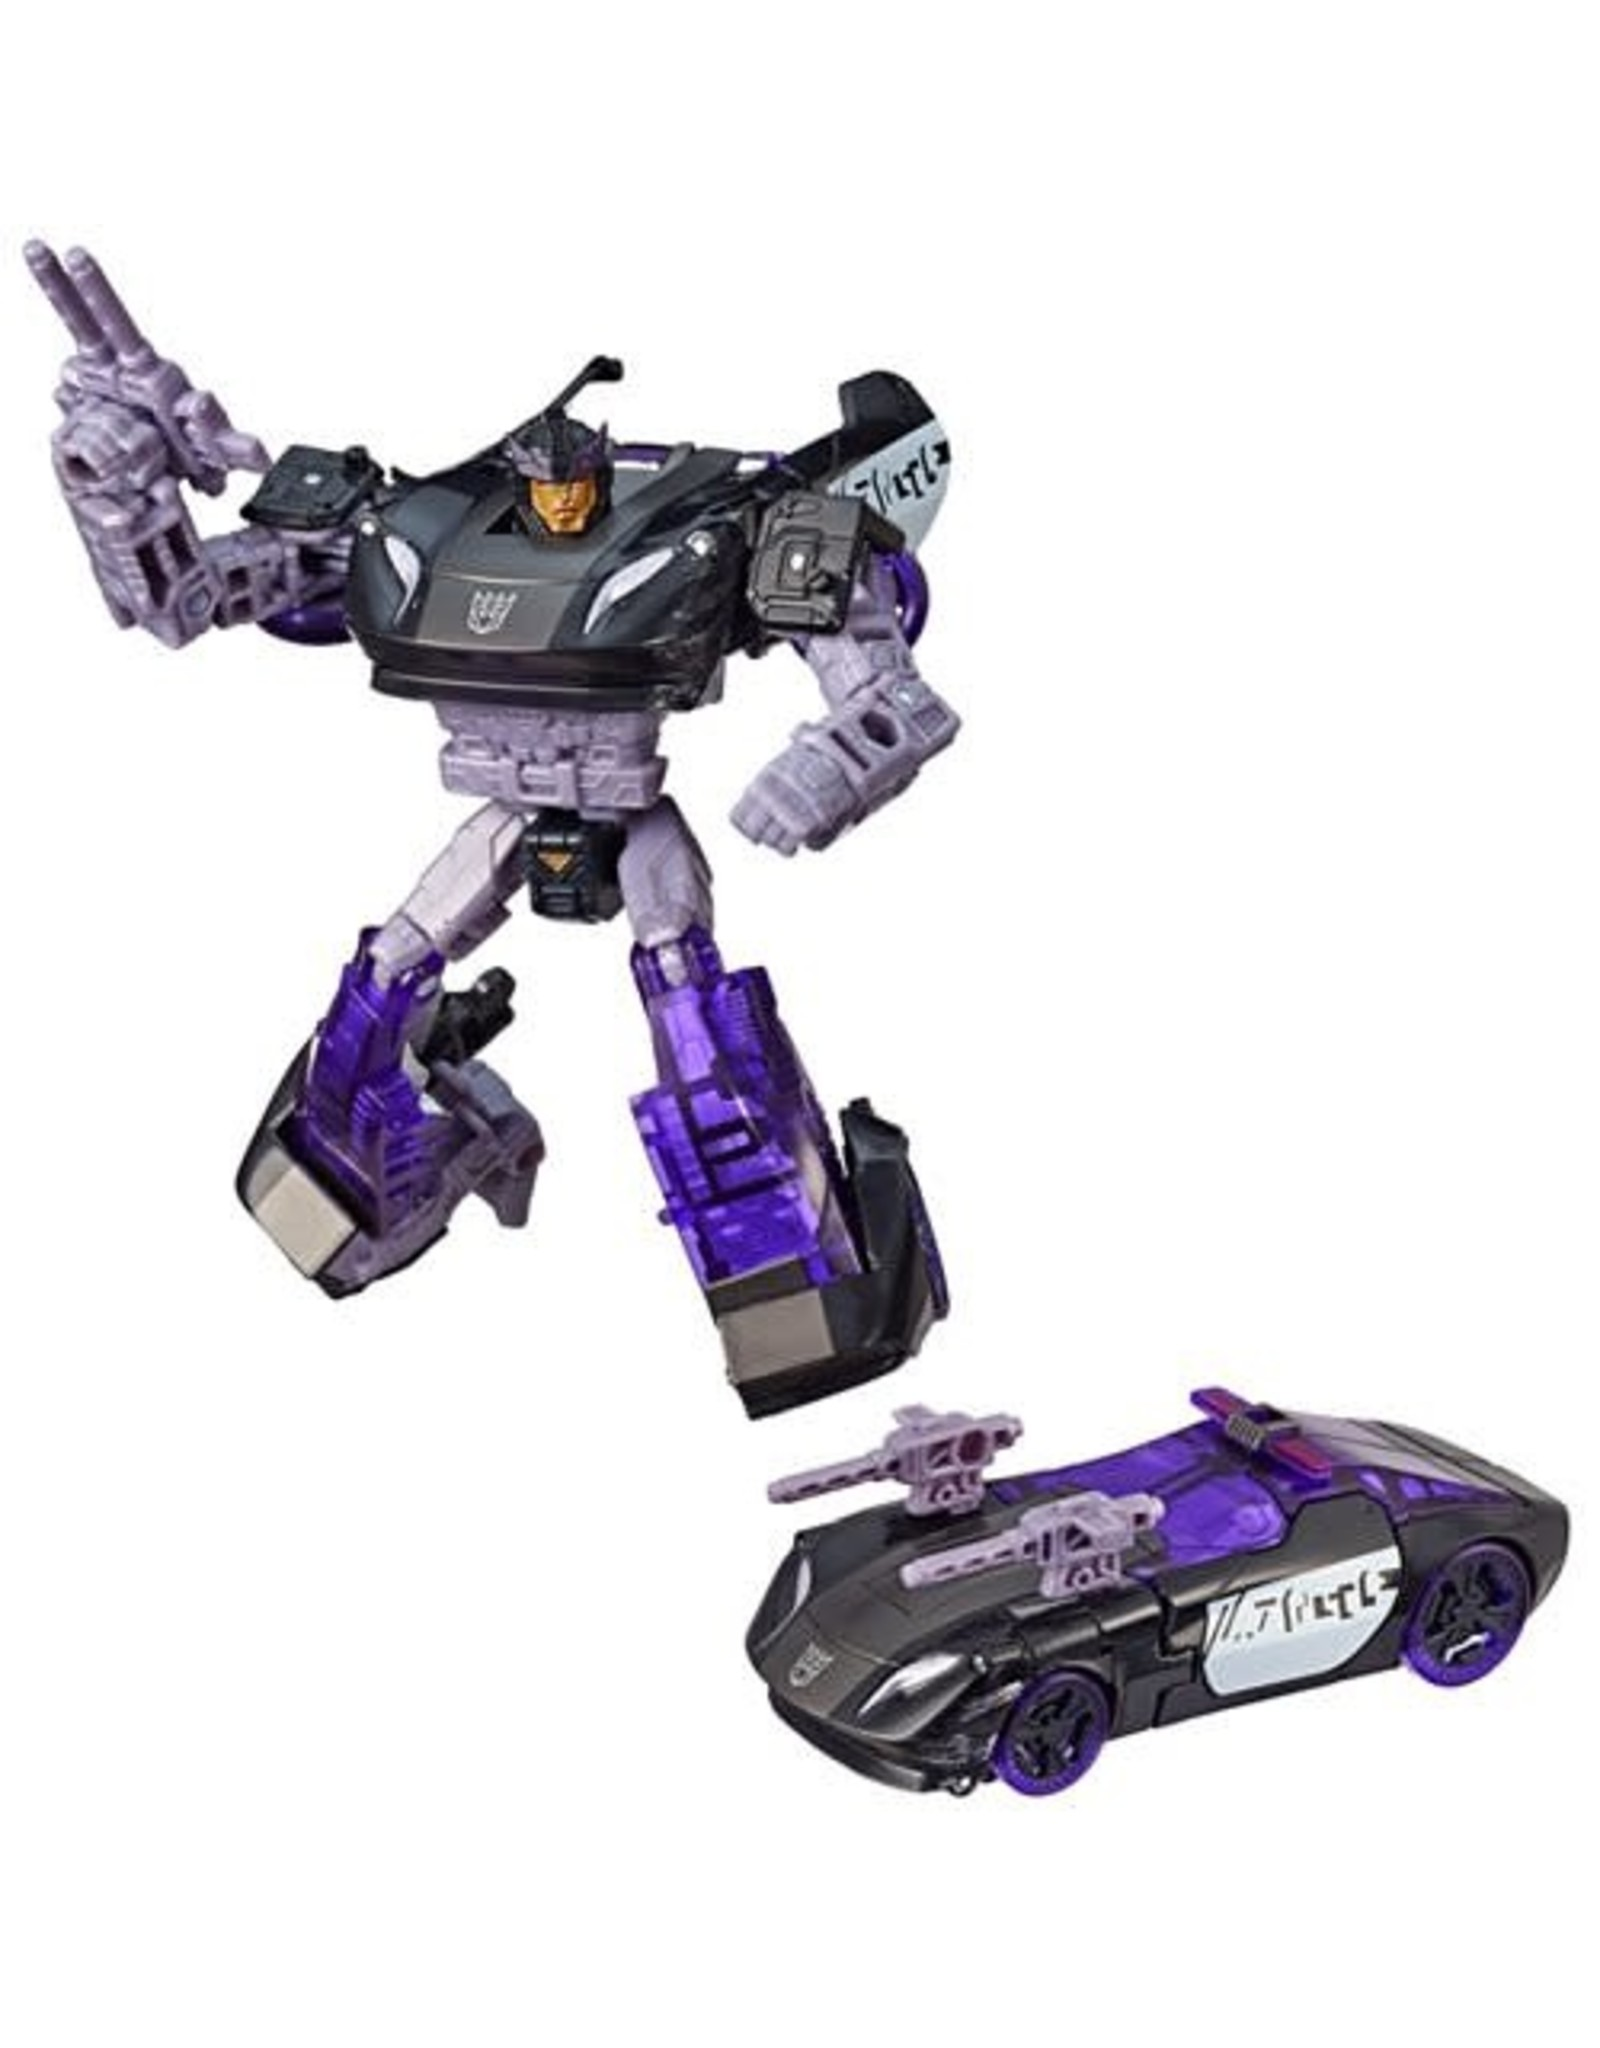 Hasbro Transformers Generations War for Cybertron: Siege Deluxe Barricade